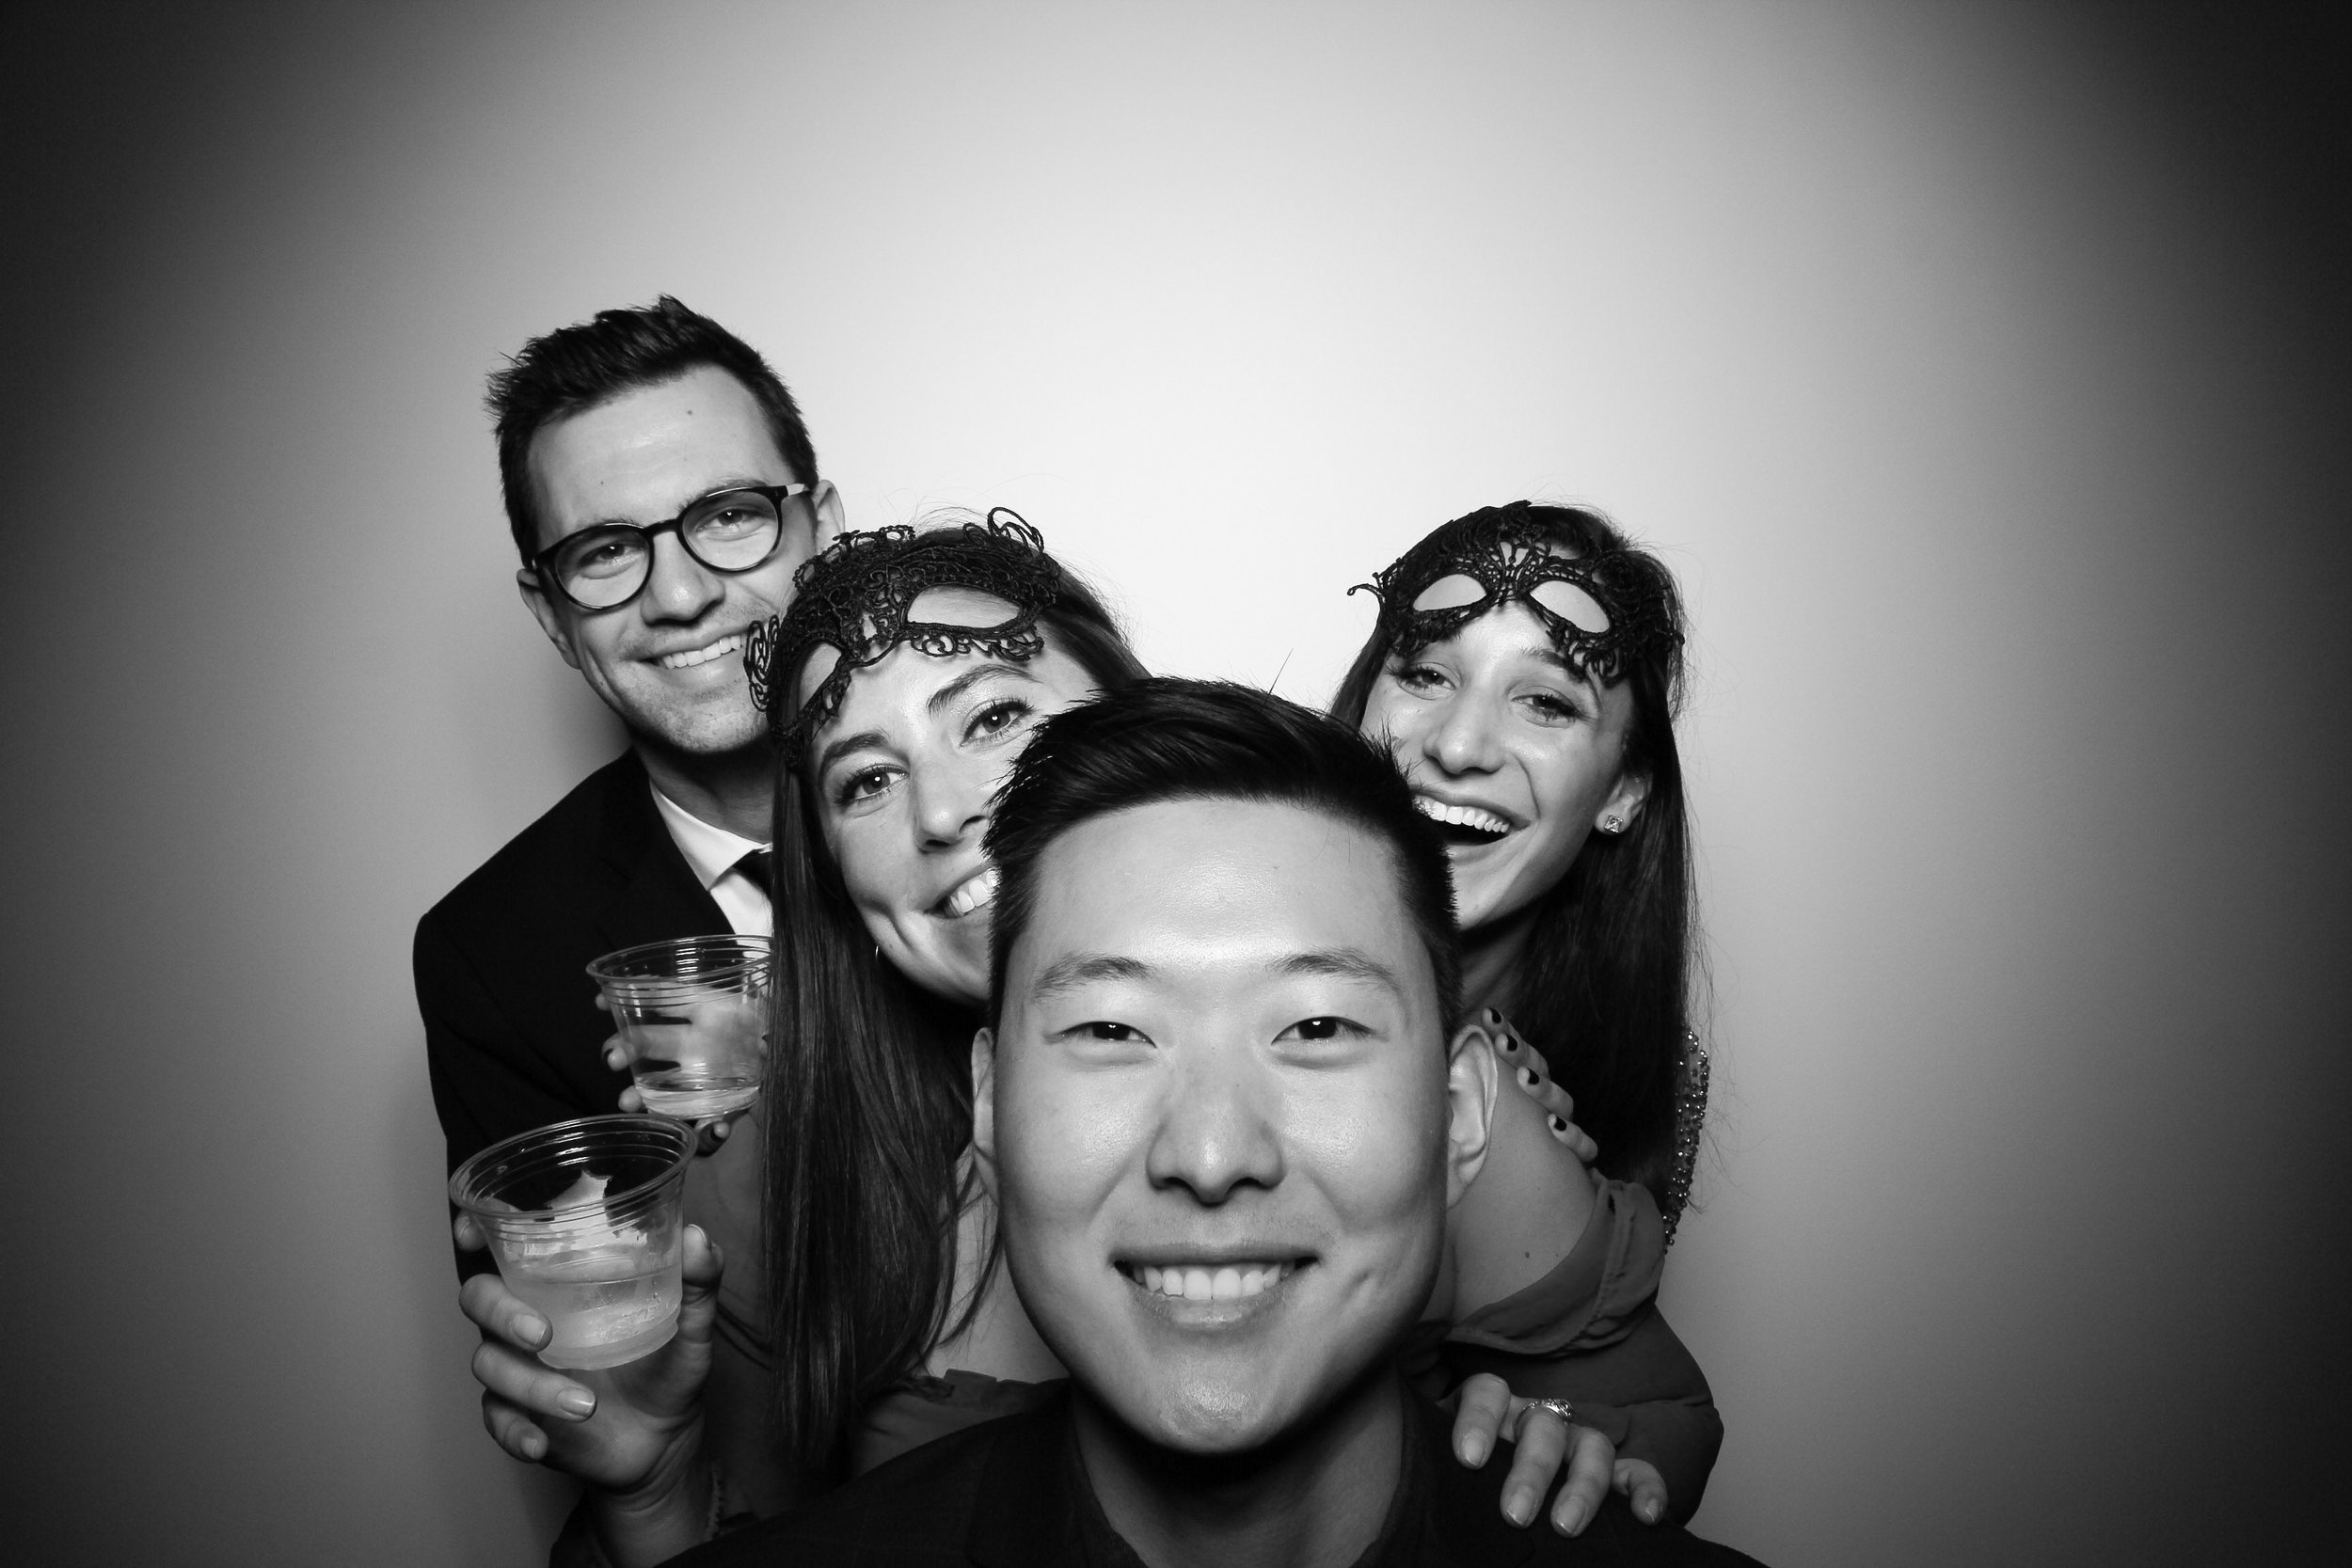 Chicago_Vintage_Photobooth_Solstice_Company_Holiday_Party_03.jpg